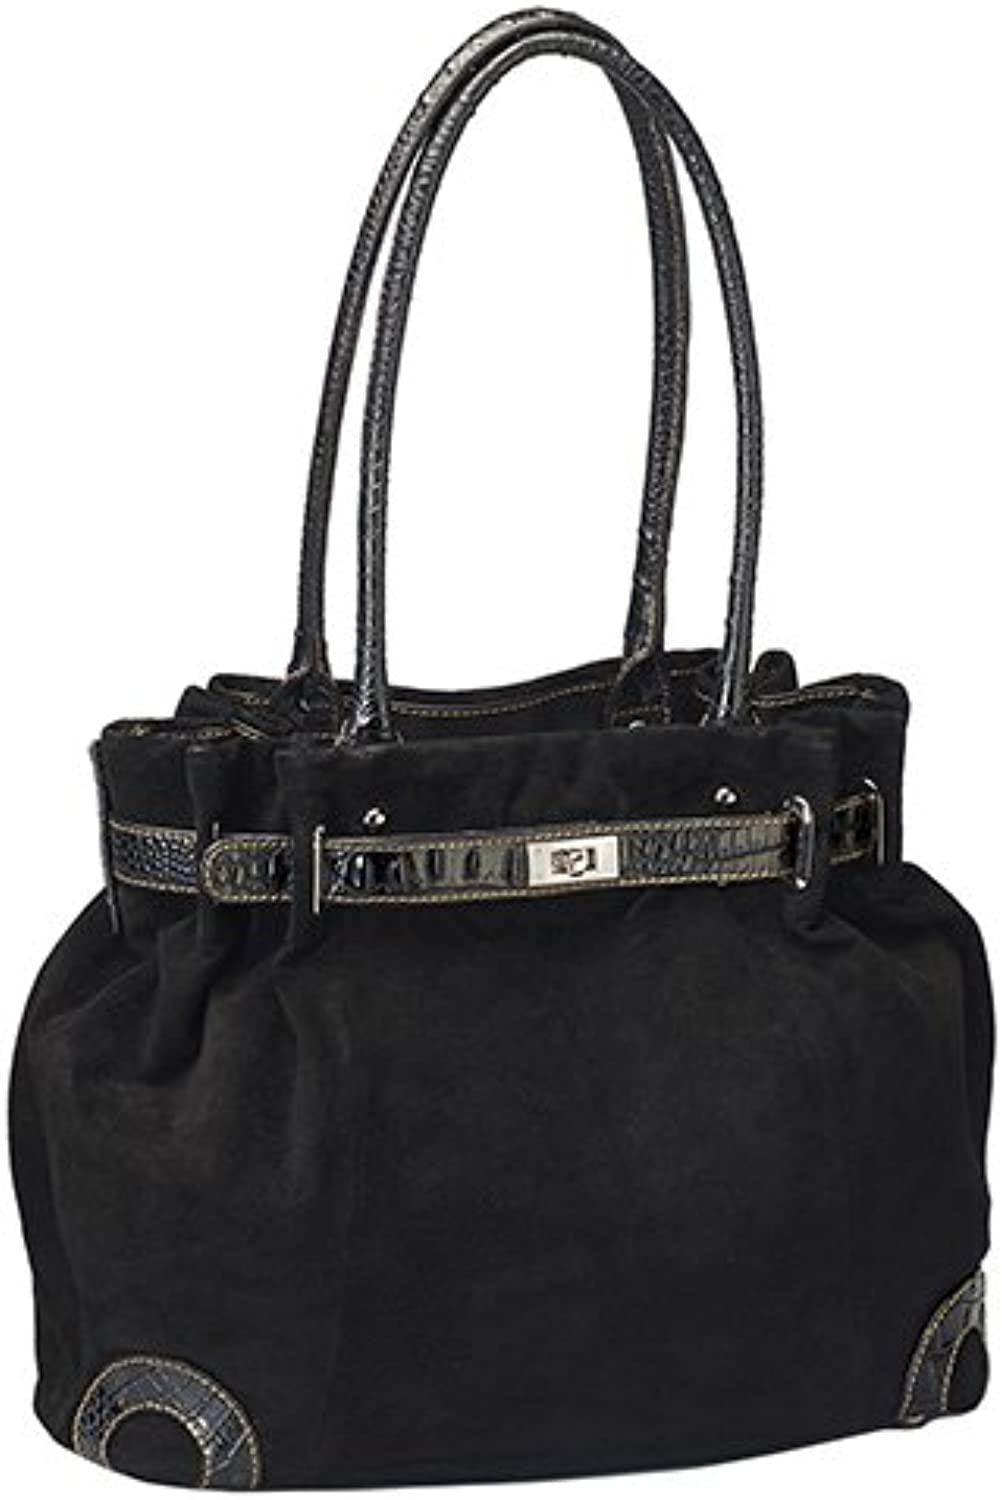 511ed5634515 Purse Carry Conceal Mamas Tote'n Legacy GTM One 30BK Size ...